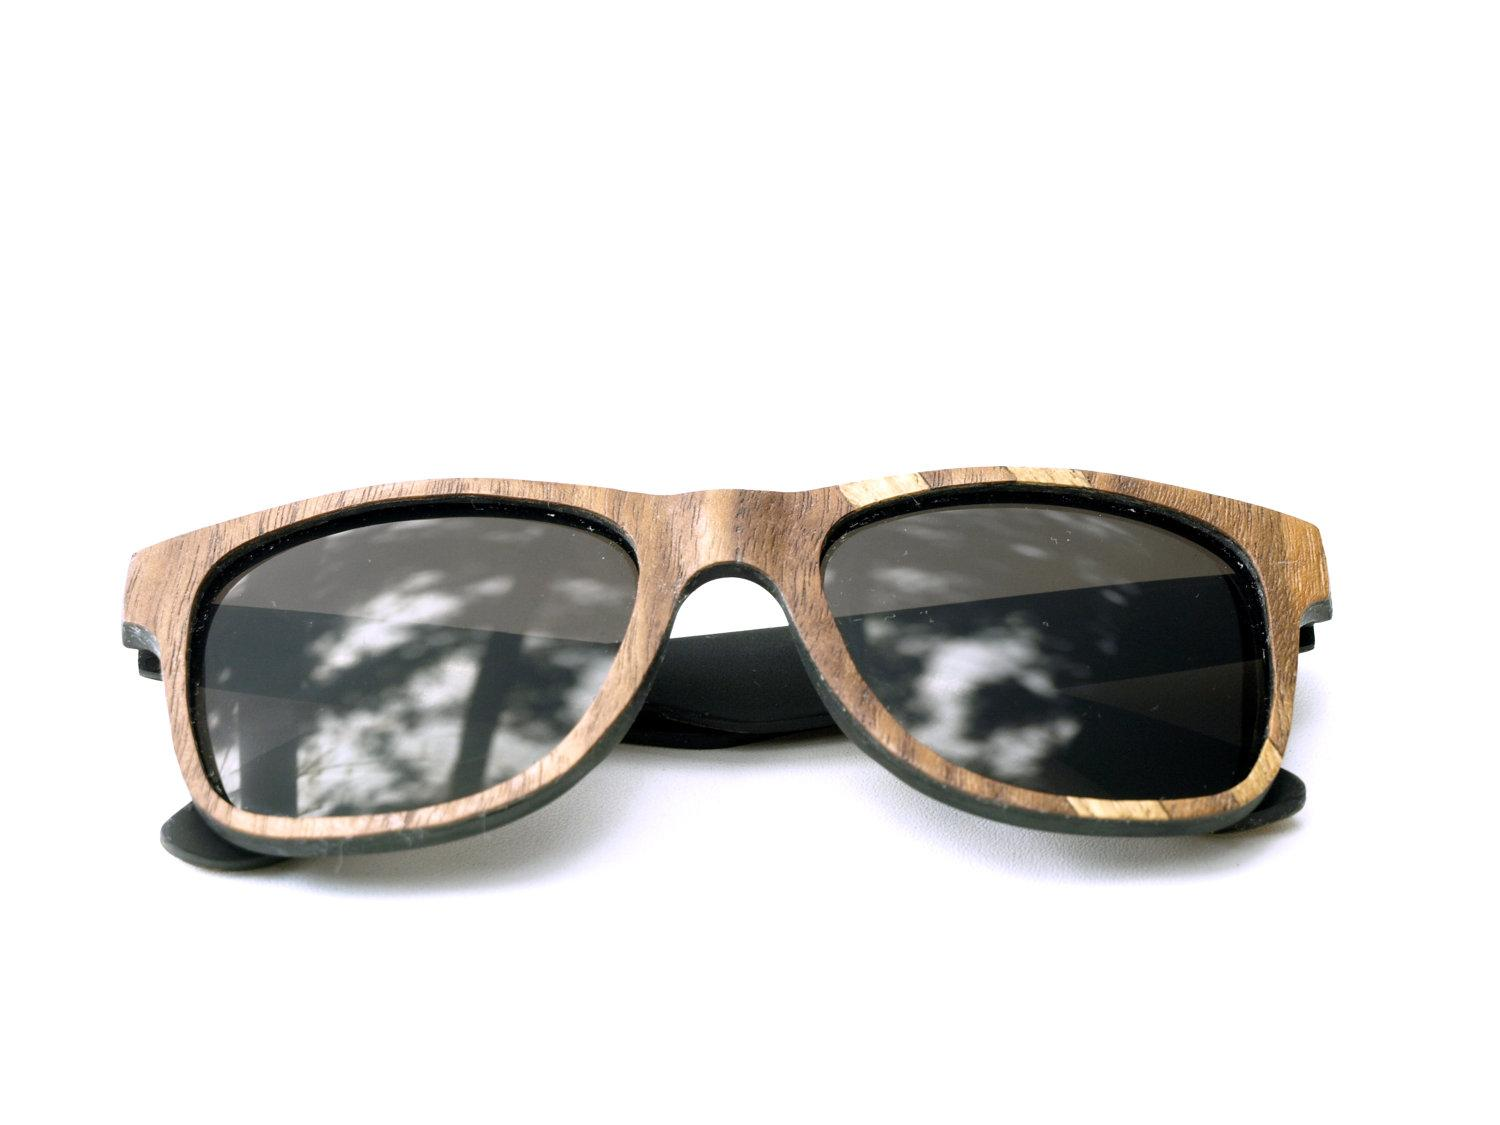 Walnut and Oak Wayfarer // The Original by tumbleweedshandcraft